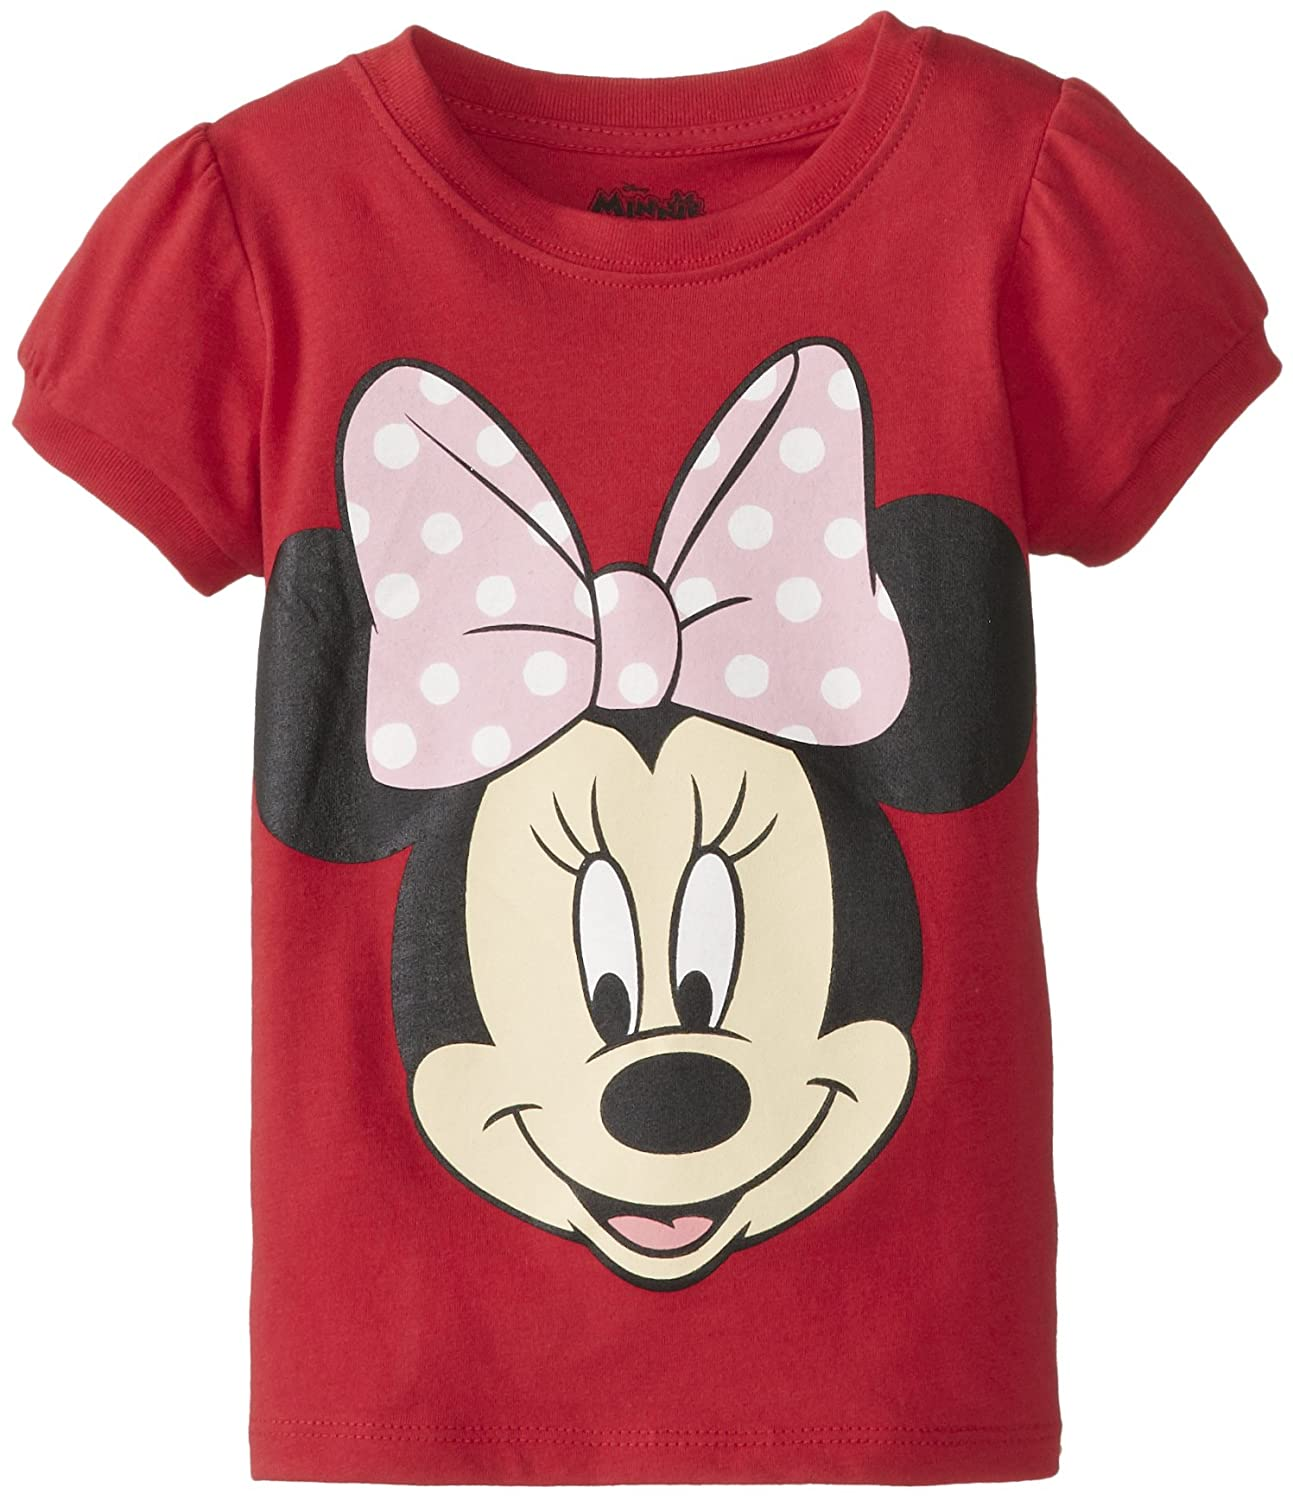 Minnie Mouse Shirts For Toddlers Minnie Mouse T-shirt